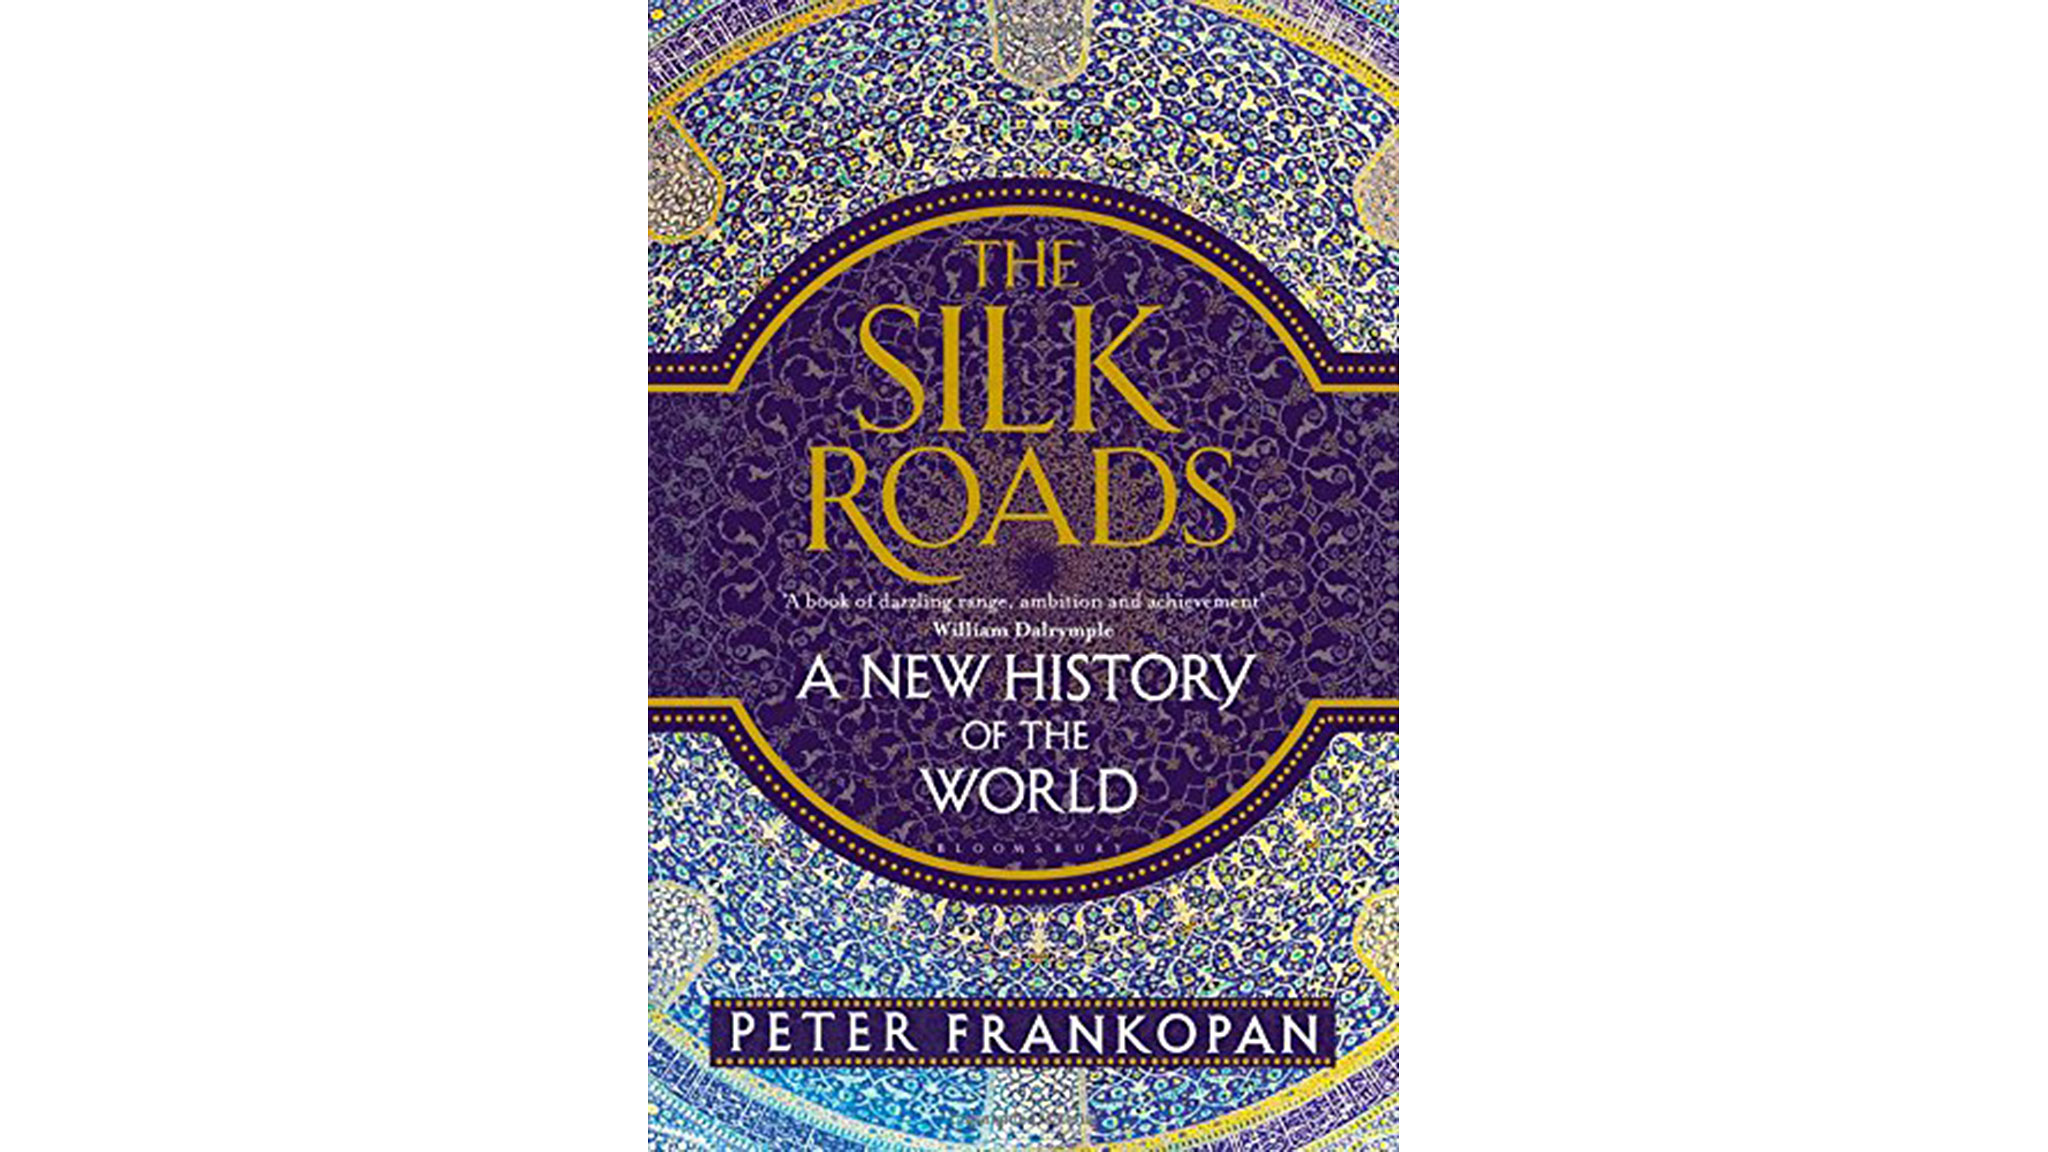 Image result for peter frankopan the silk roads